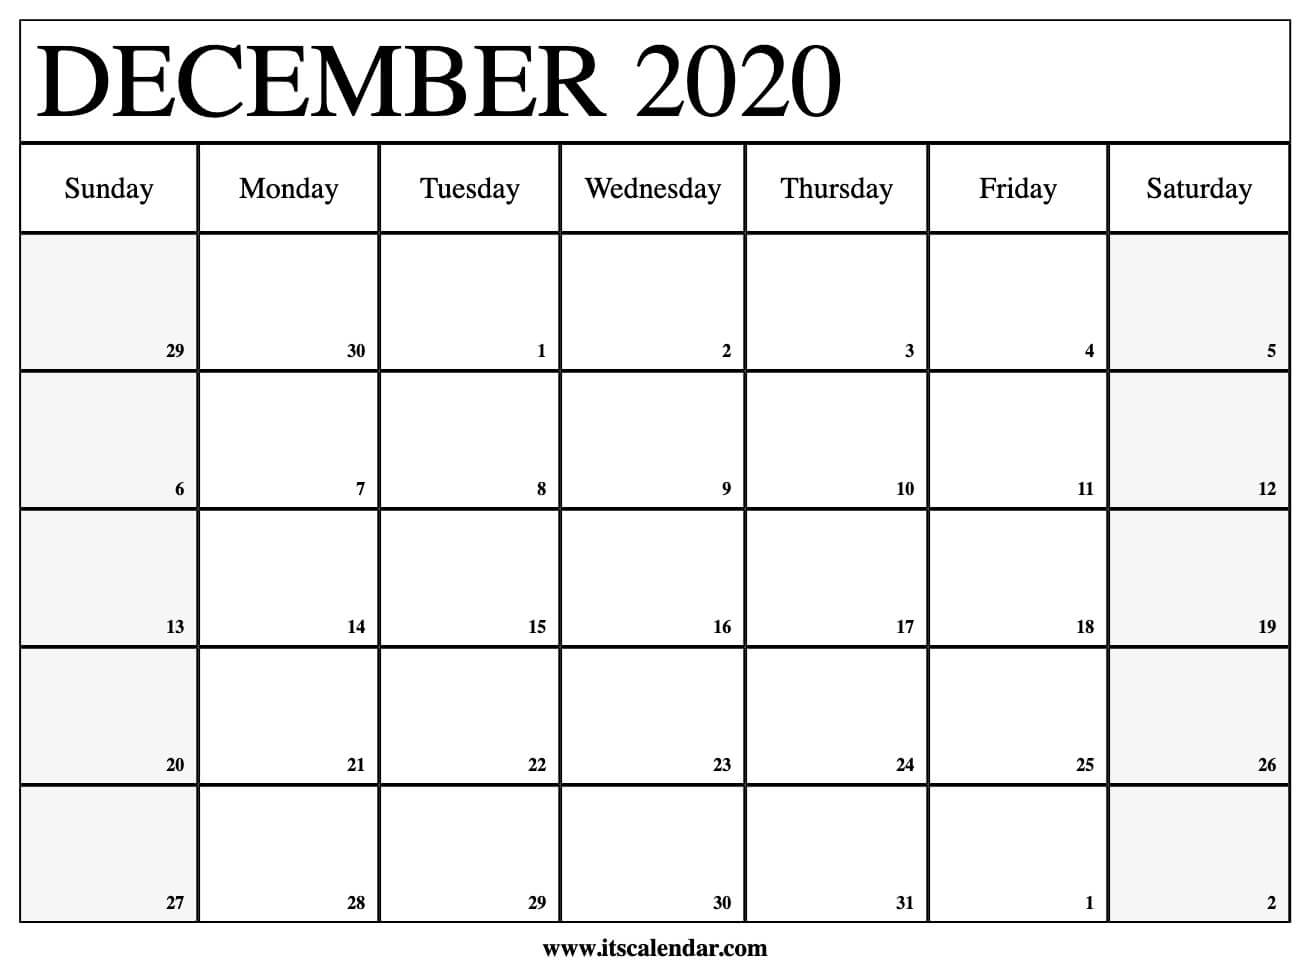 Free Printable December 2020 Calendar pertaining to 123 Calendars December 2020